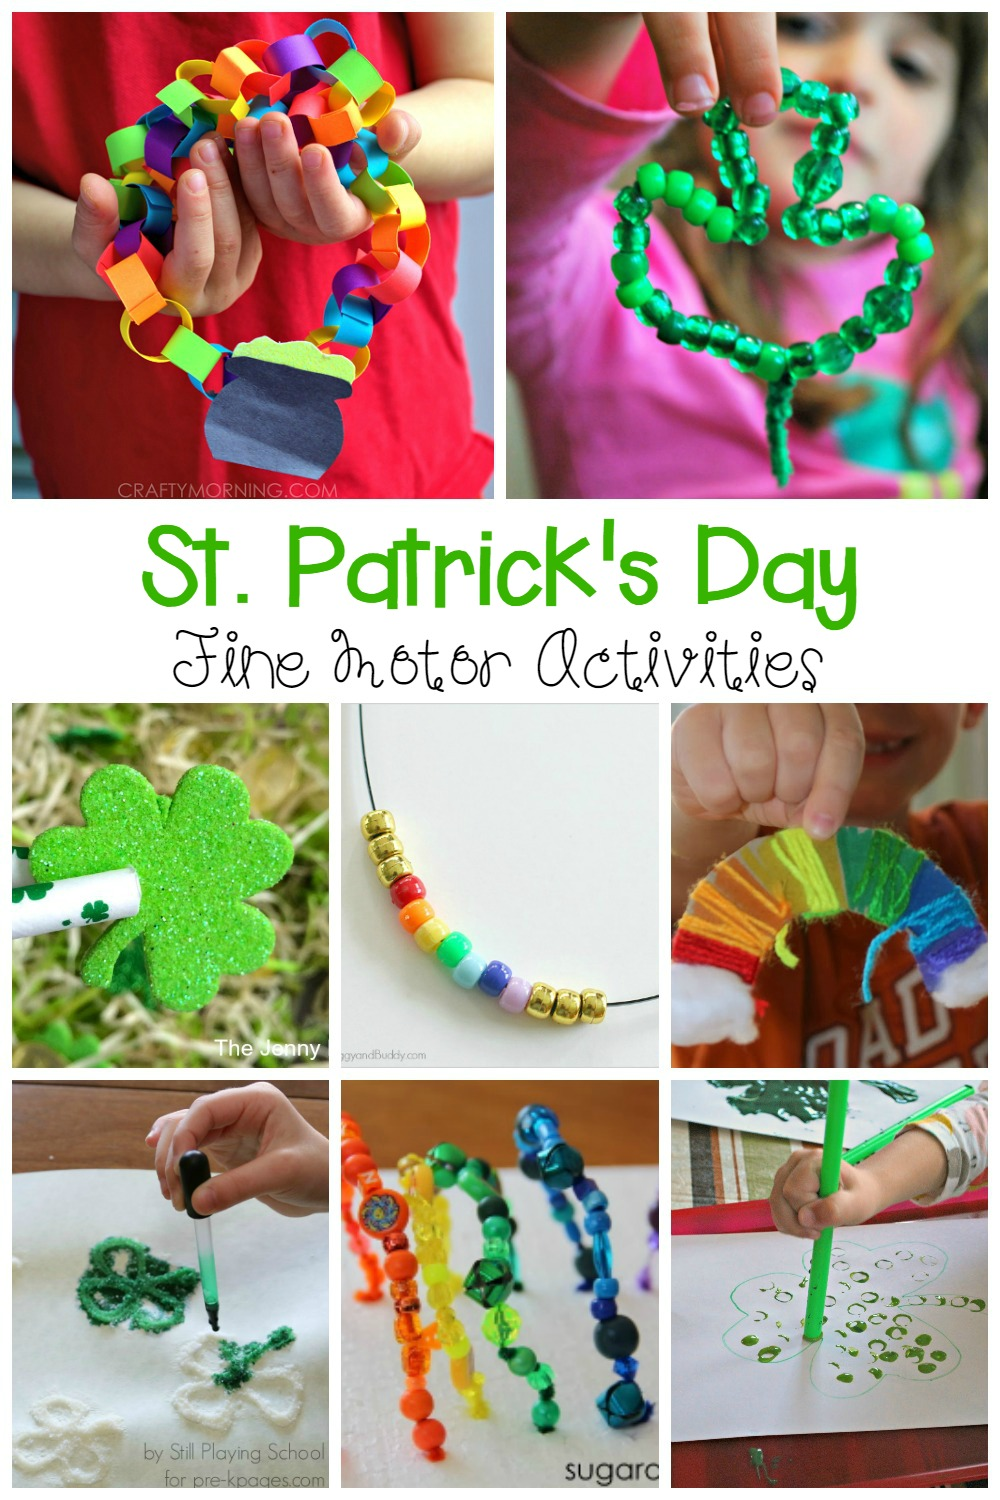 Fun St. Patrick's Day Fine Motor Activities!